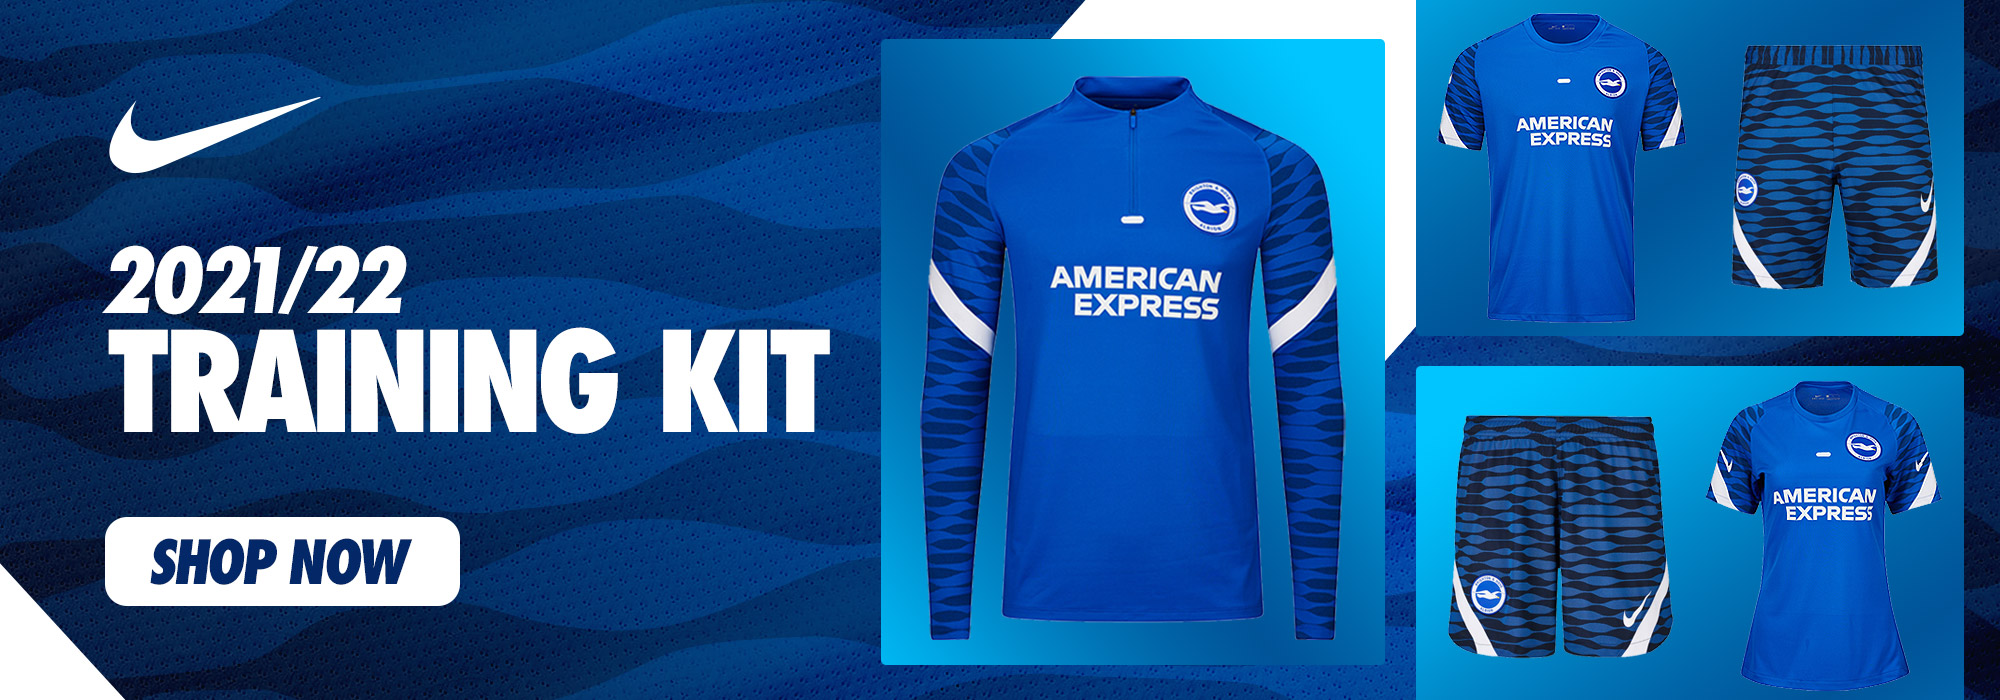 21-22 Training Kit Out Now